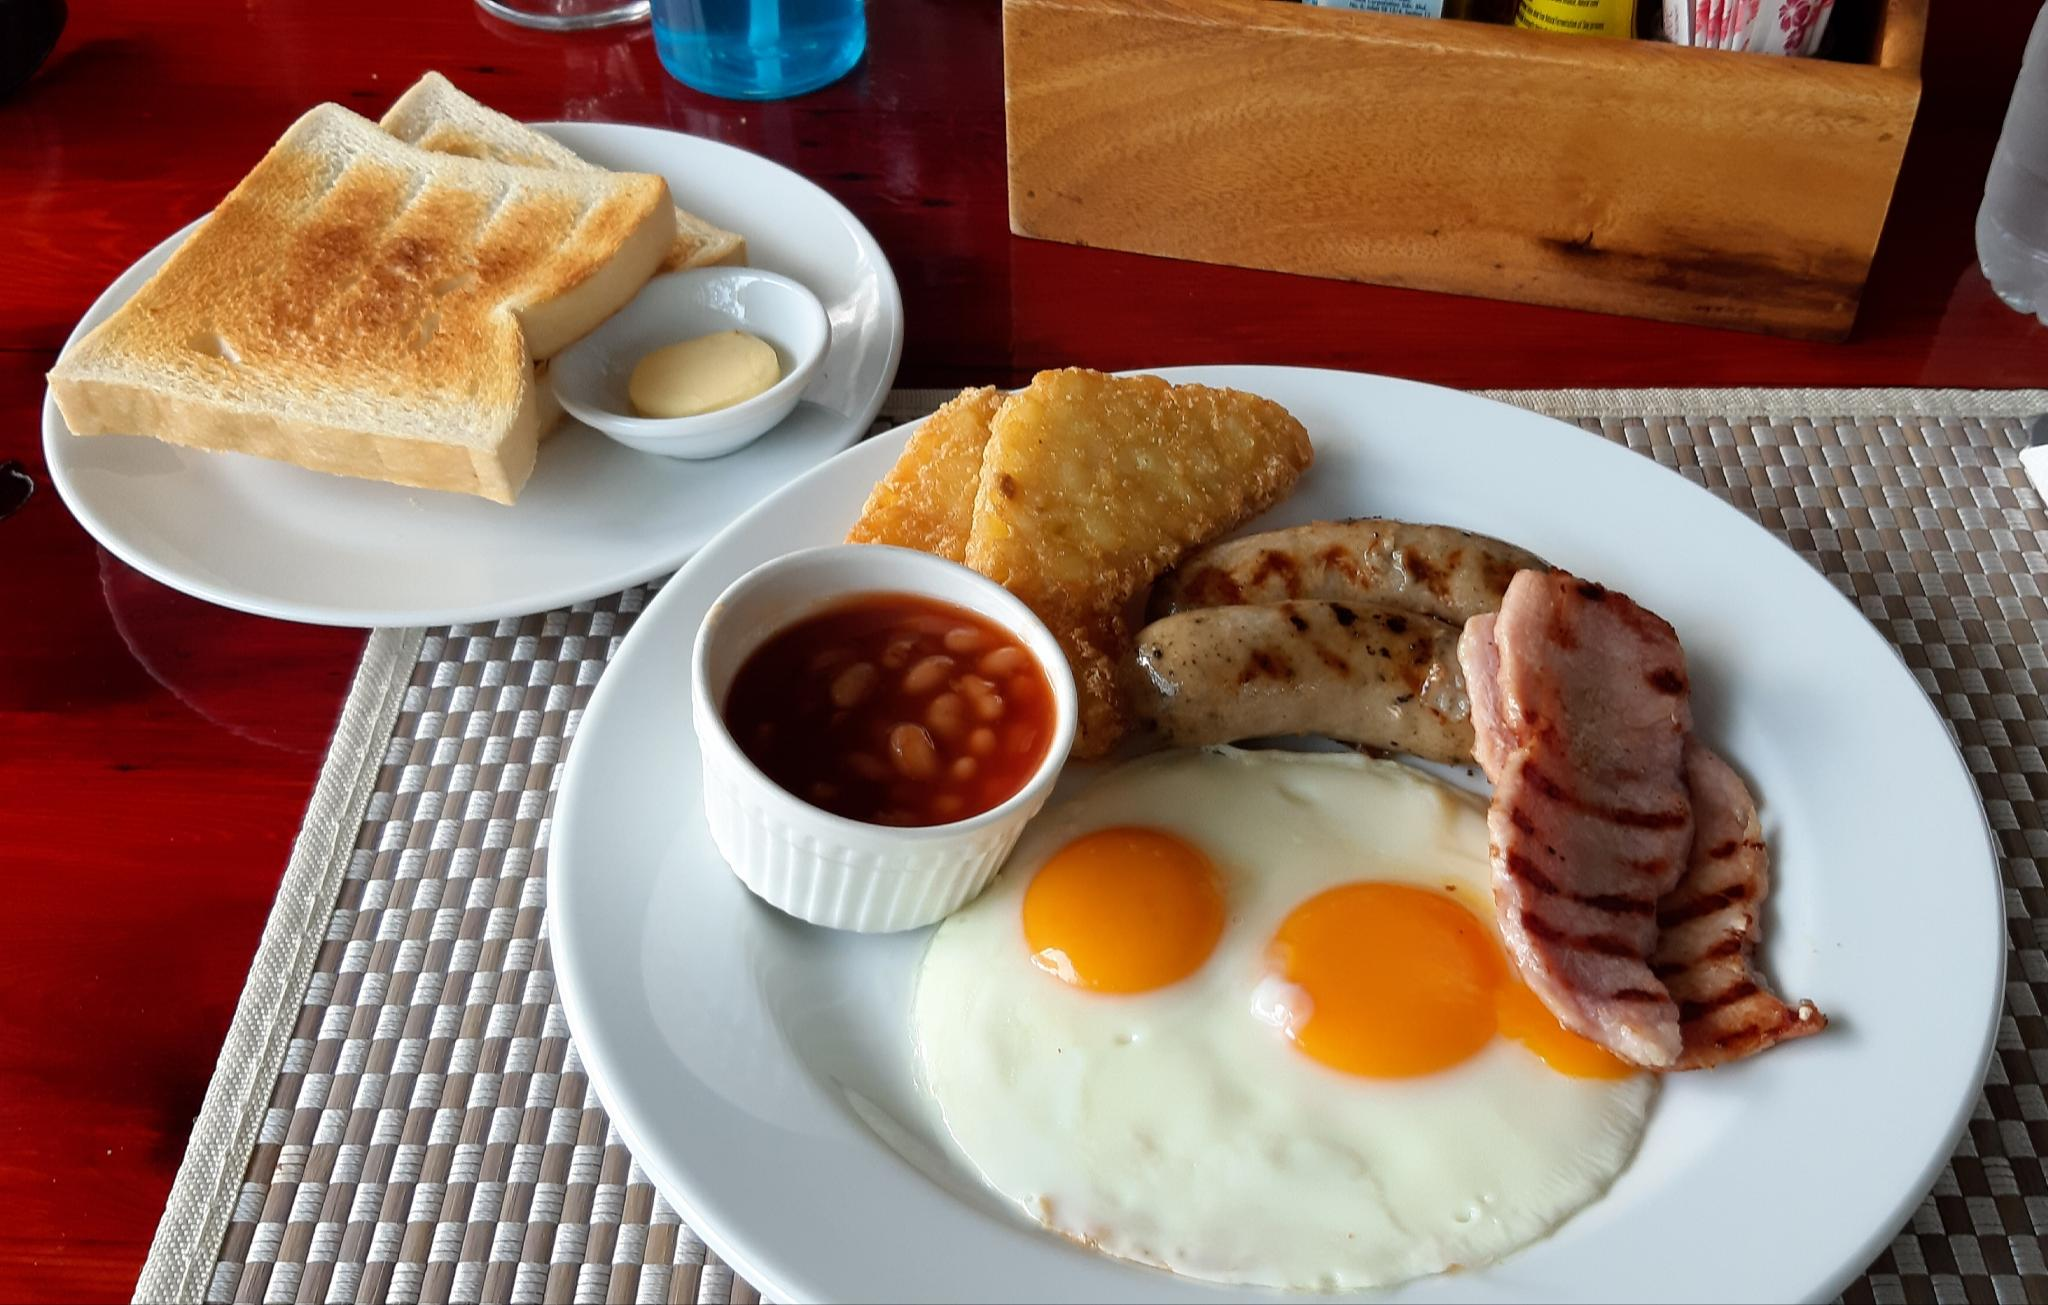 The Best Breakfast in the World Step by Step.: the Full English-20210502_180129-jpg